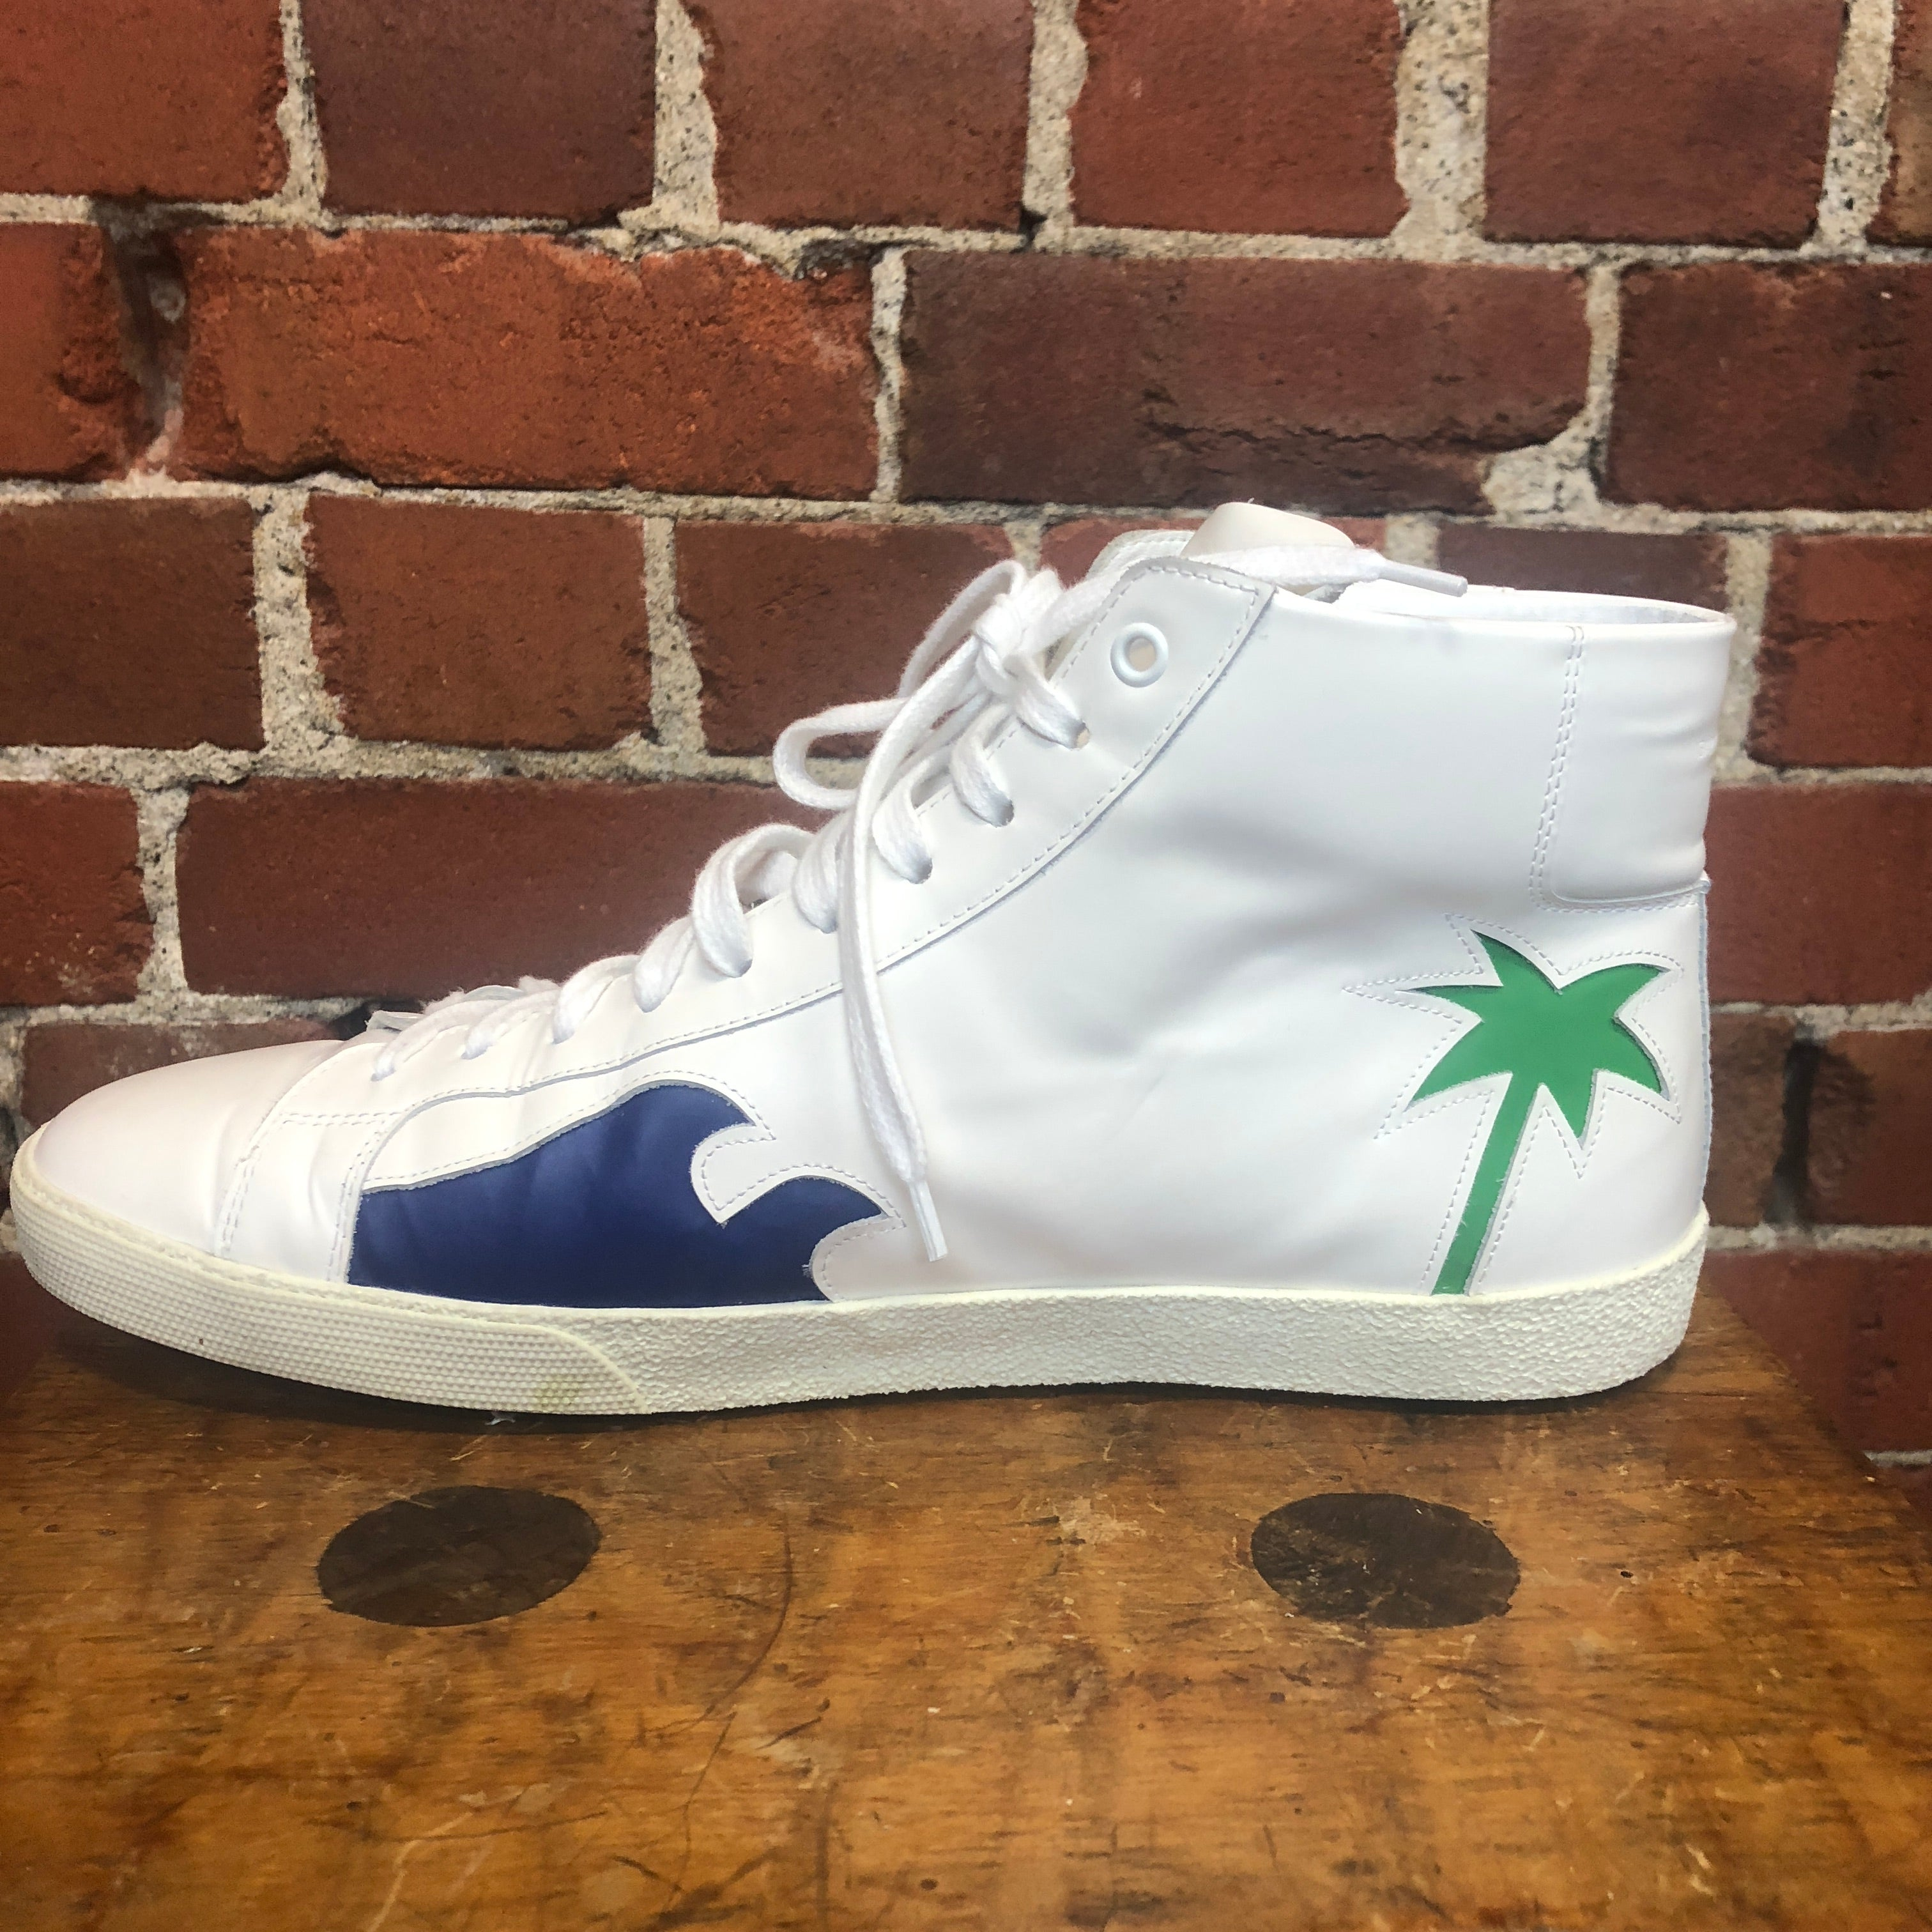 YVES SAINT LAURENT leather sneakers